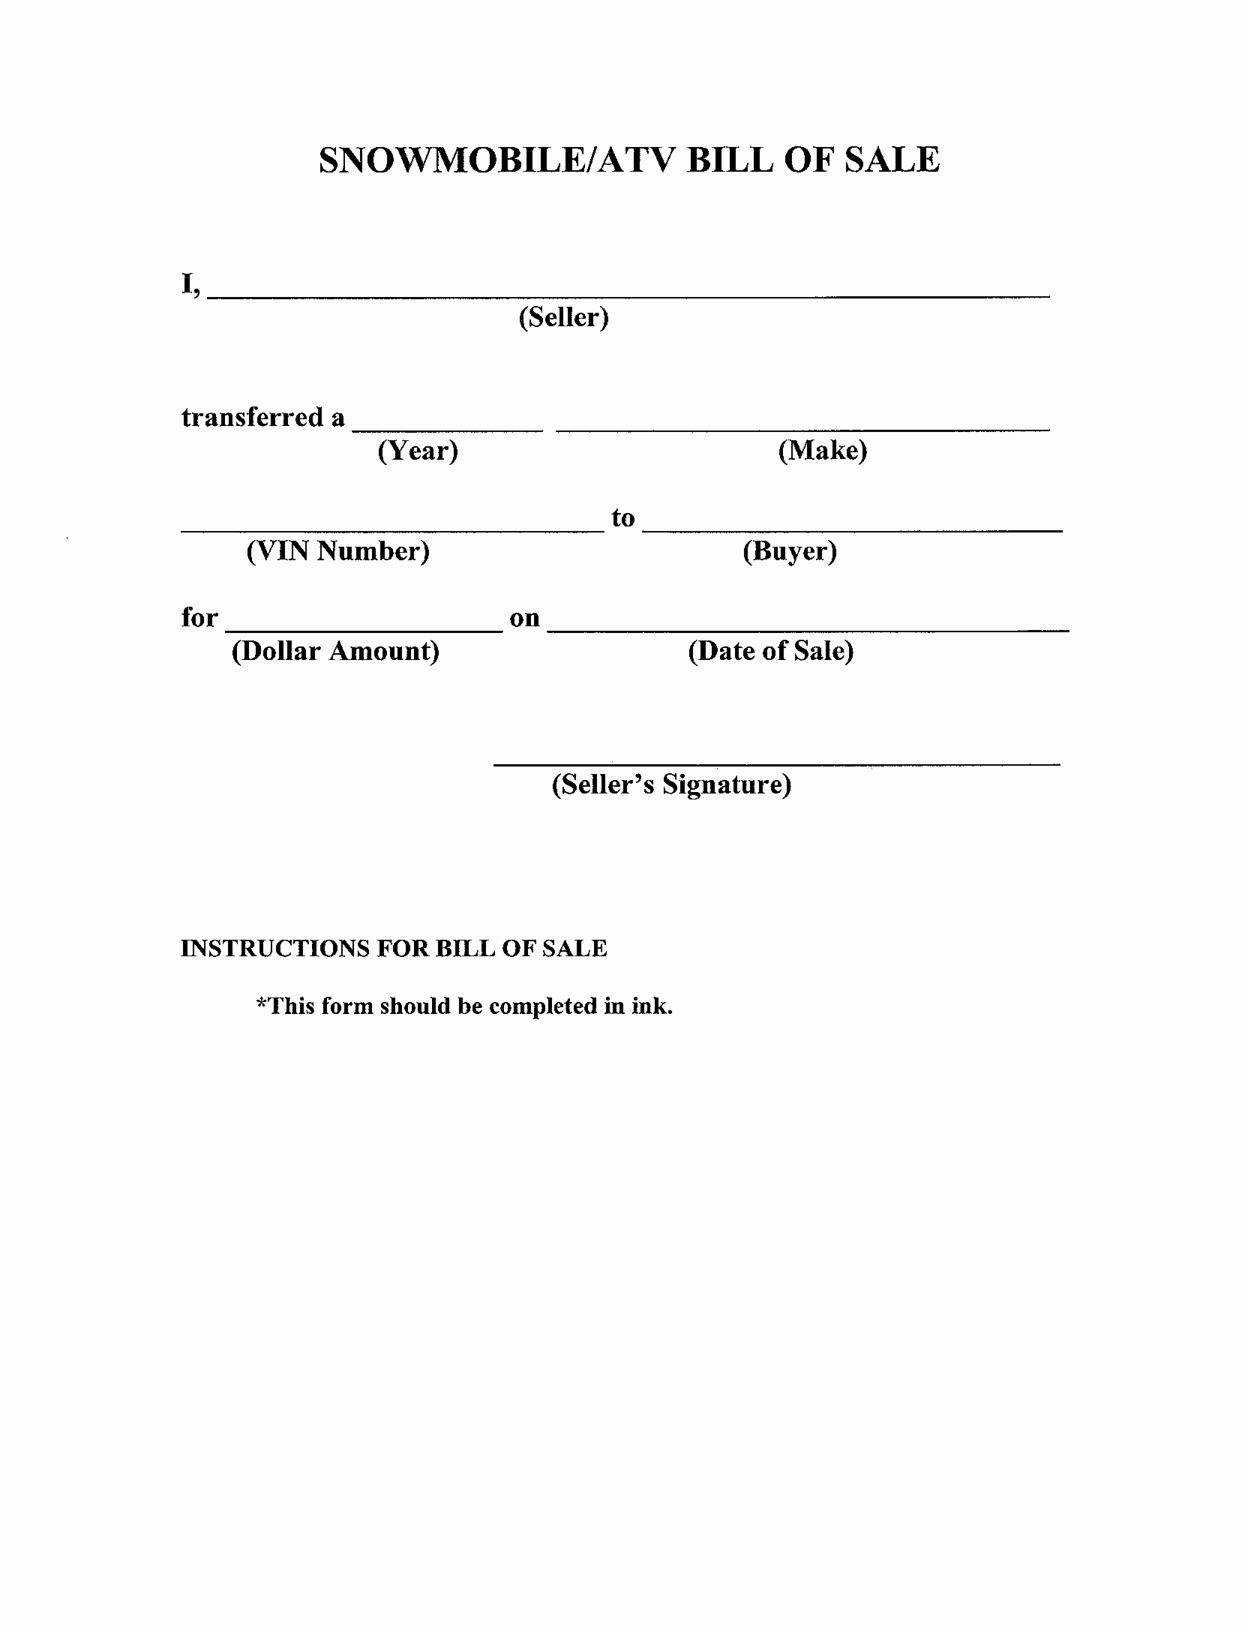 Bill Of Sale Printable Template Awesome Free Printable Bill Of Sale Templates form Generic